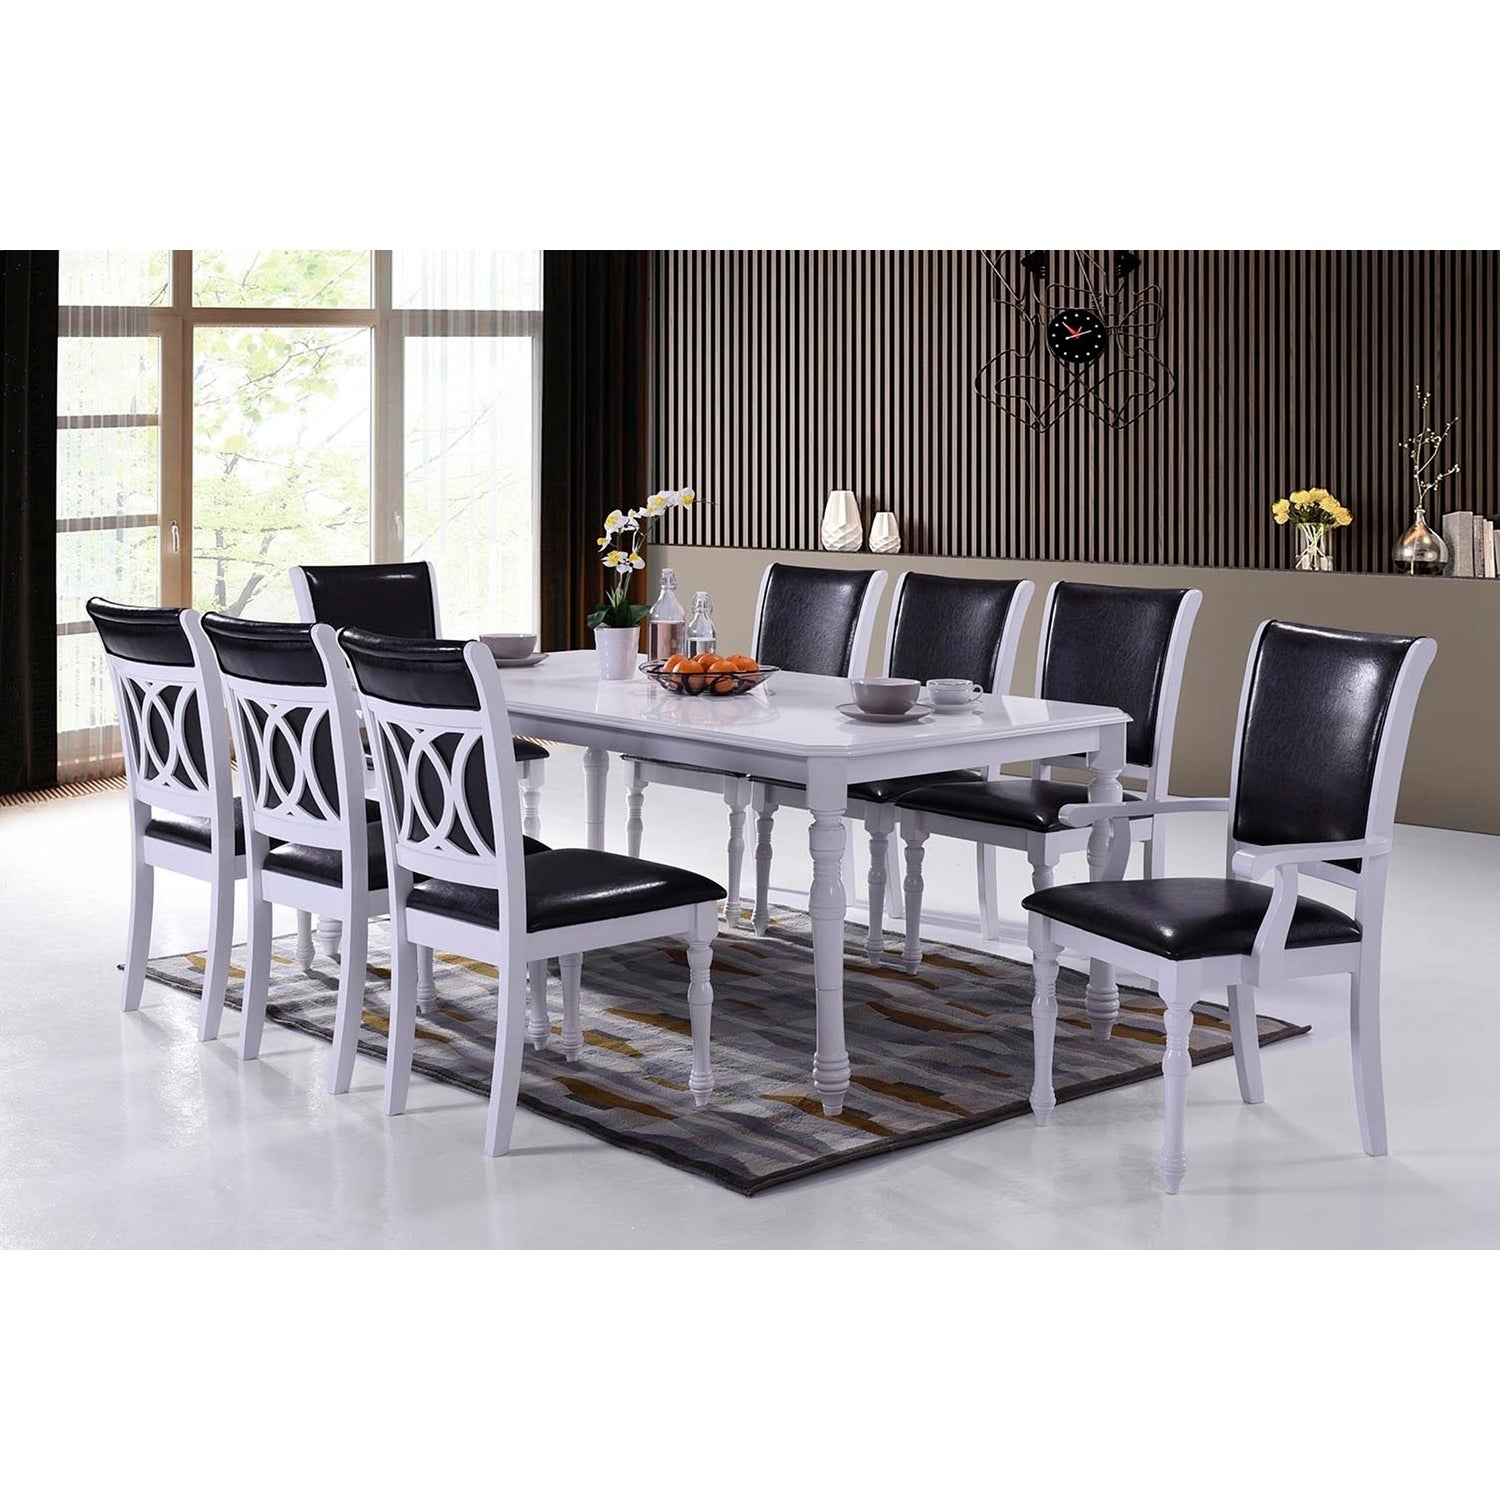 Indoor Black And White Modern 9pc Dining Set With A Solid Wood Rectangular Dining Table And 8 Upholstered Dining Chairs Overstock 23507202